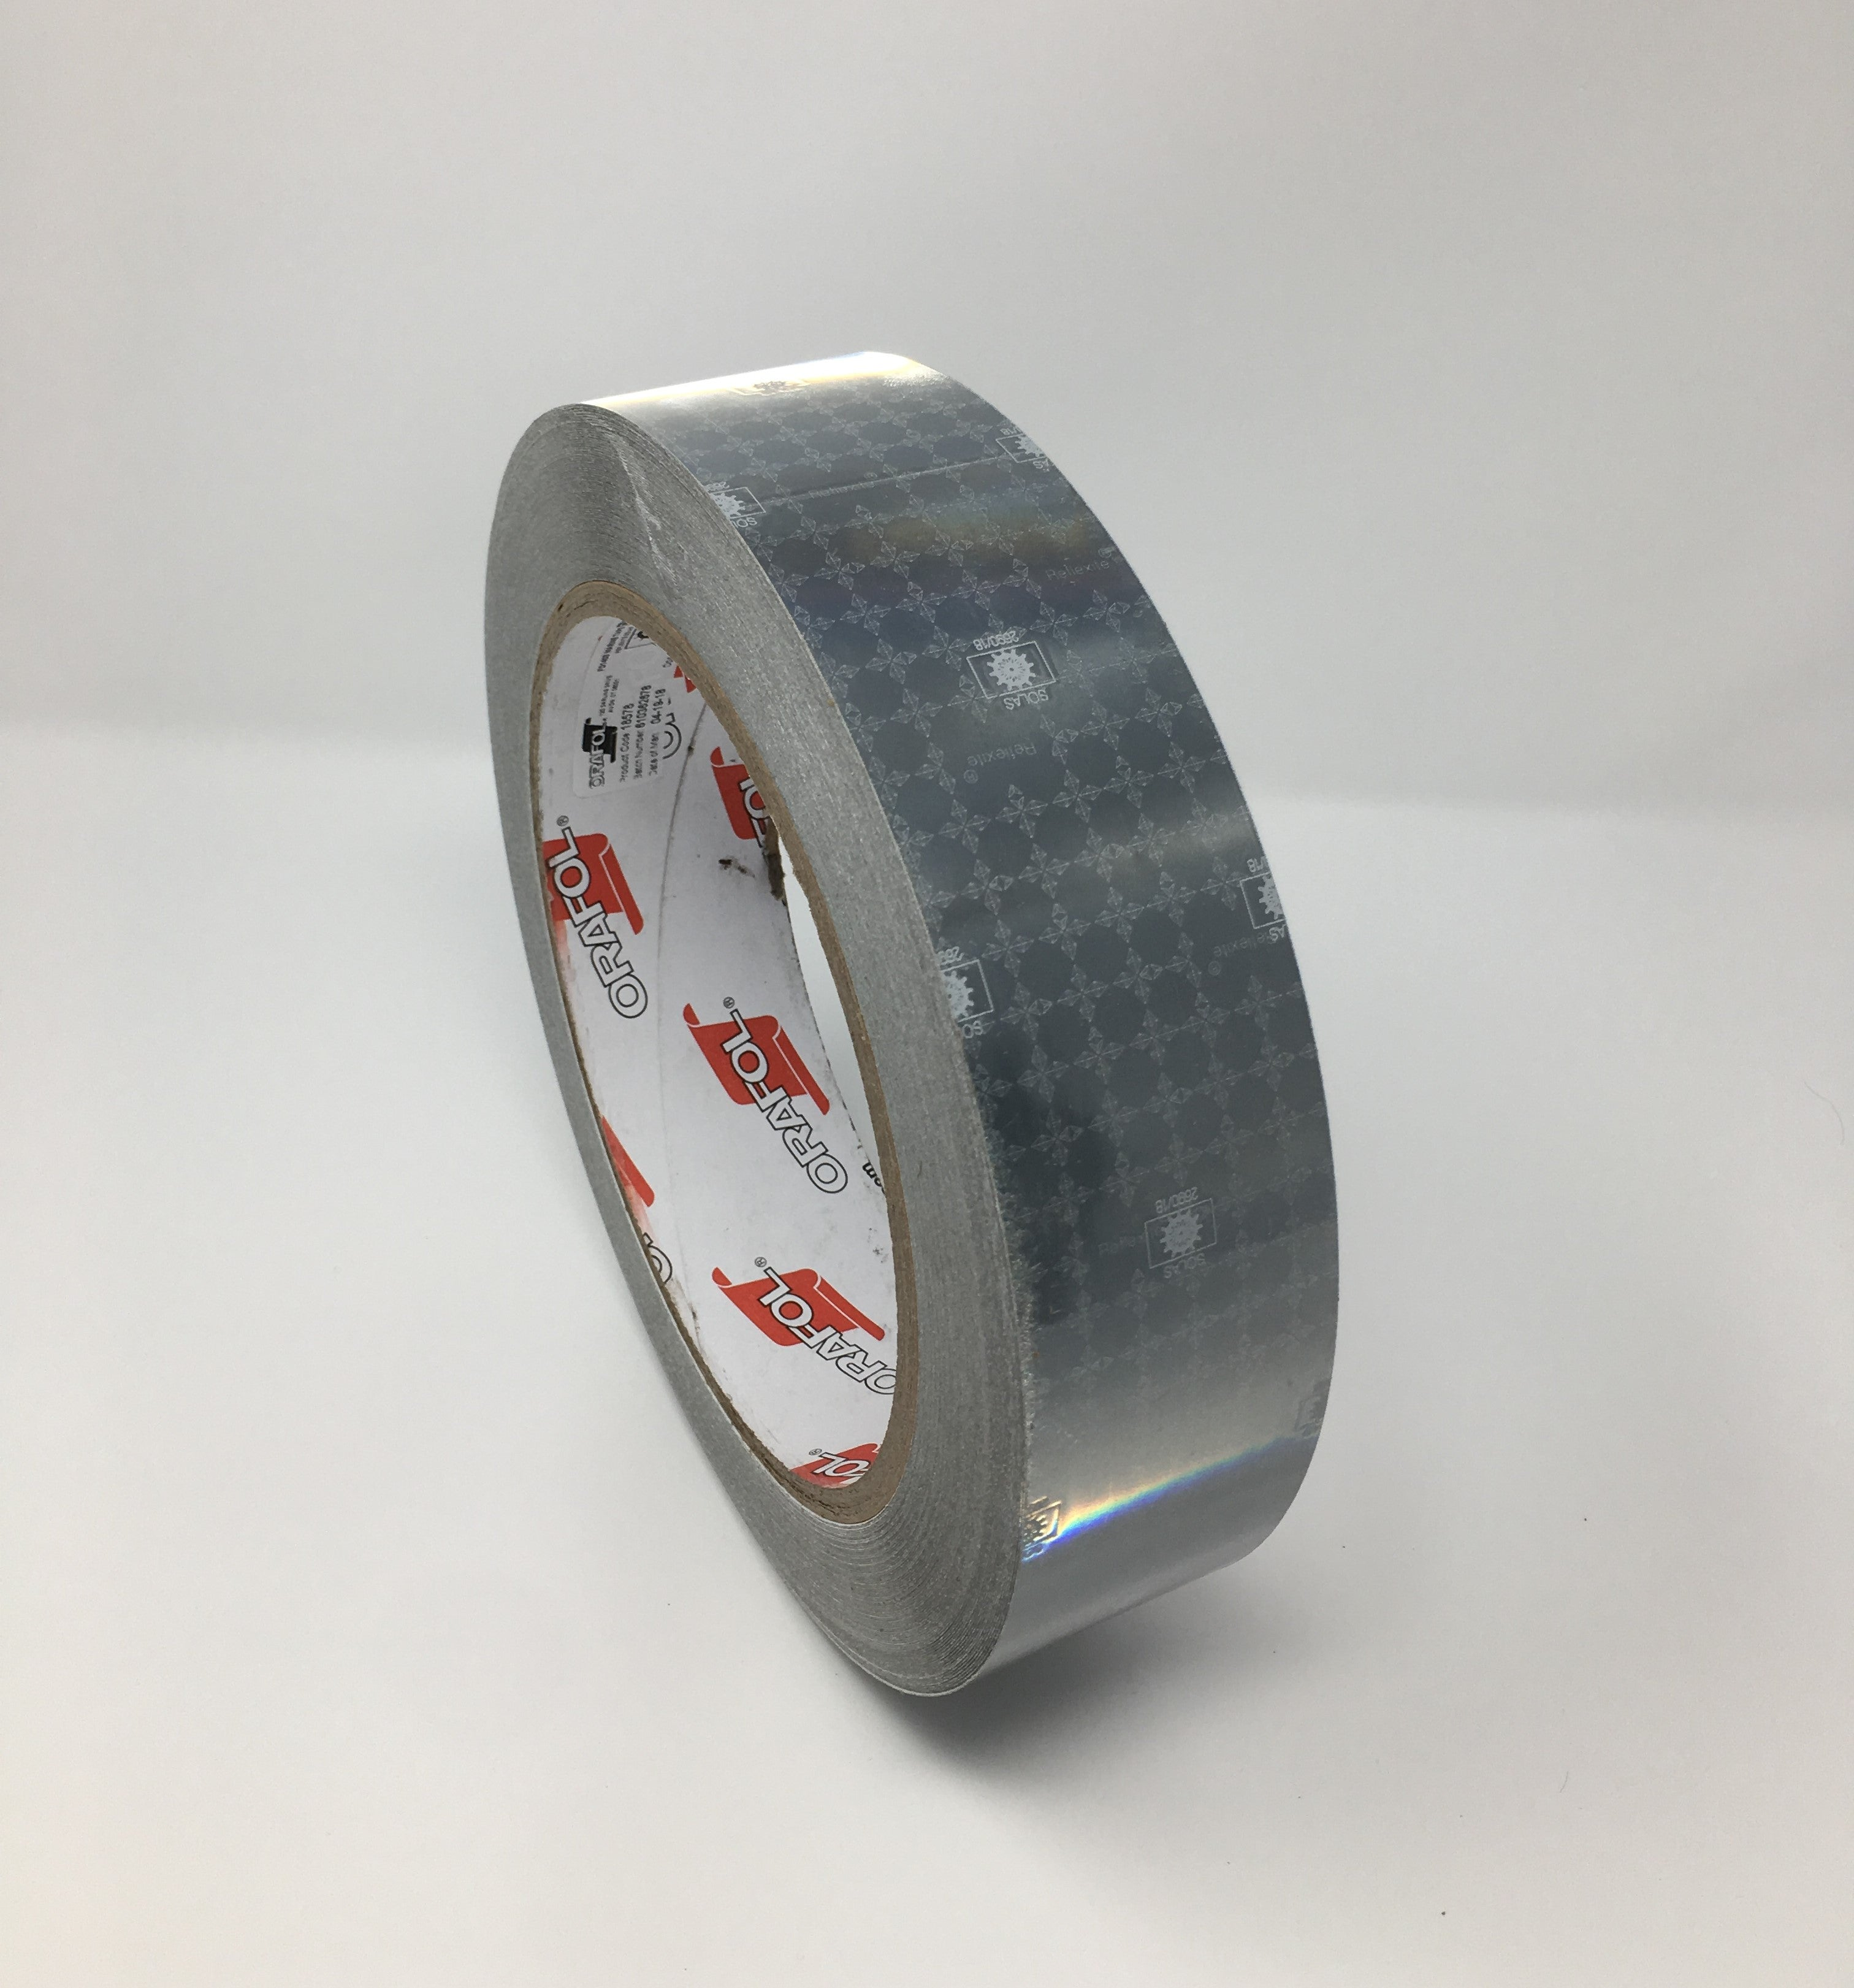 "2"" x 12' Roll Orafol Oralite (Reflexite) M82 SOLAS Reflective Marine Tape Safety of life at Sea Maritime Aids to Navigation"